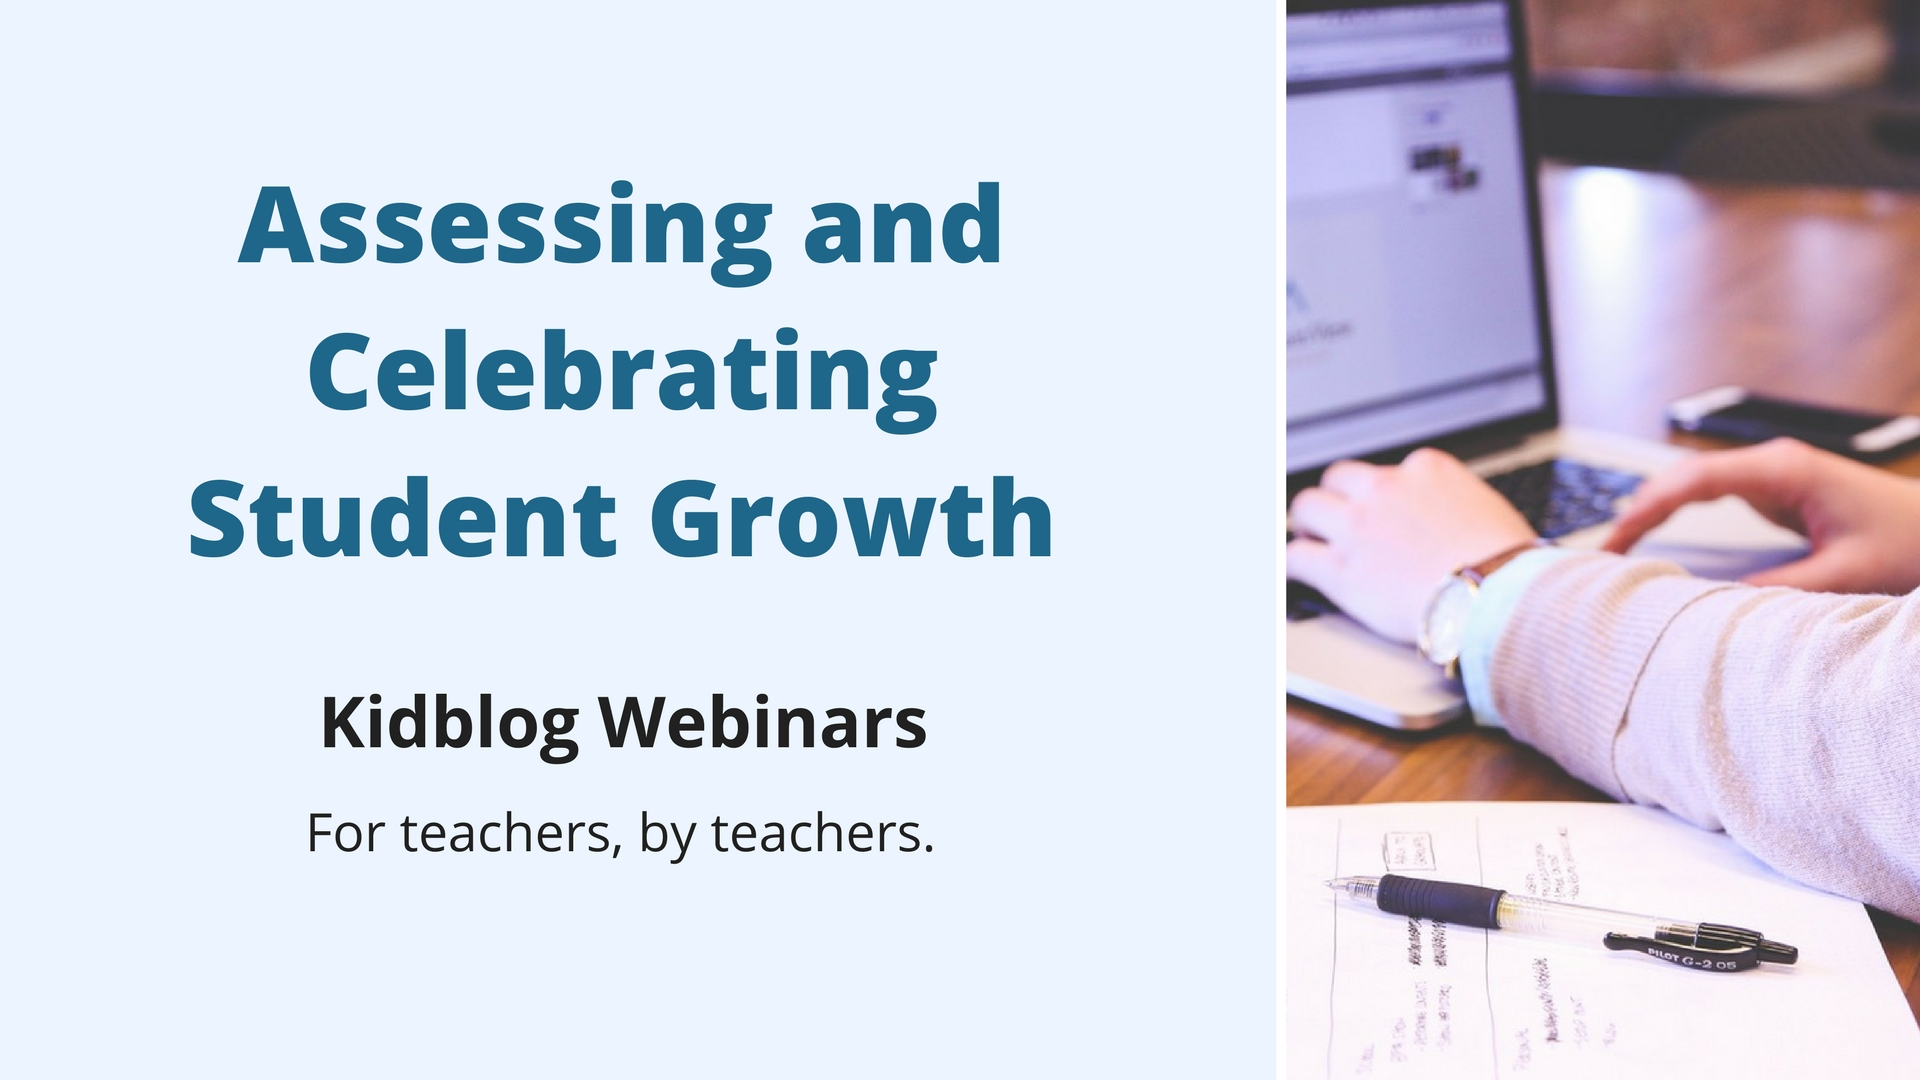 Webinar: Assessing and Celebrating Student Growth